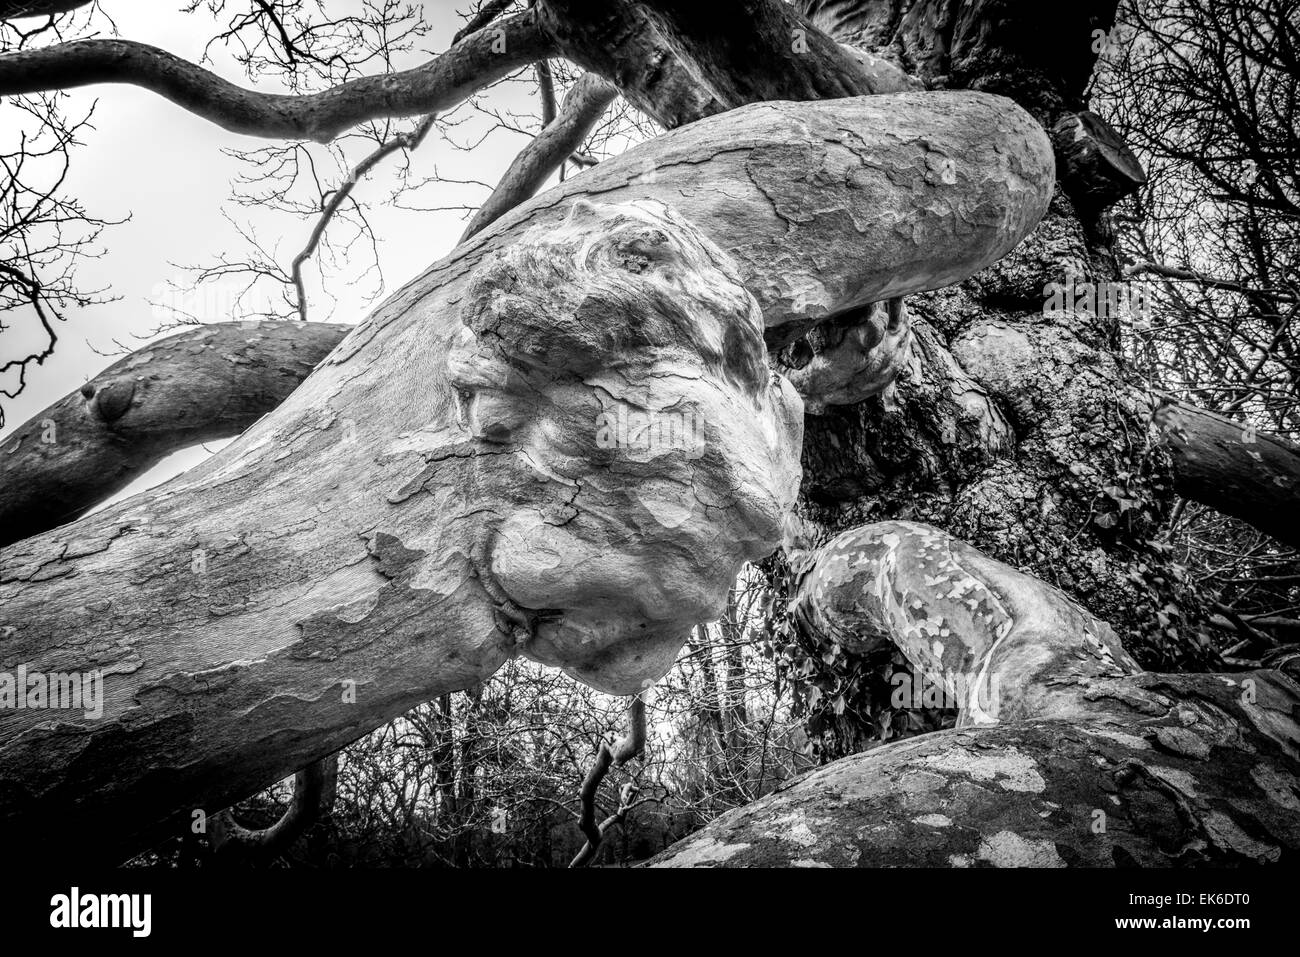 Black and white image of a creepy mans face growing out of a tree branch - Stock Image